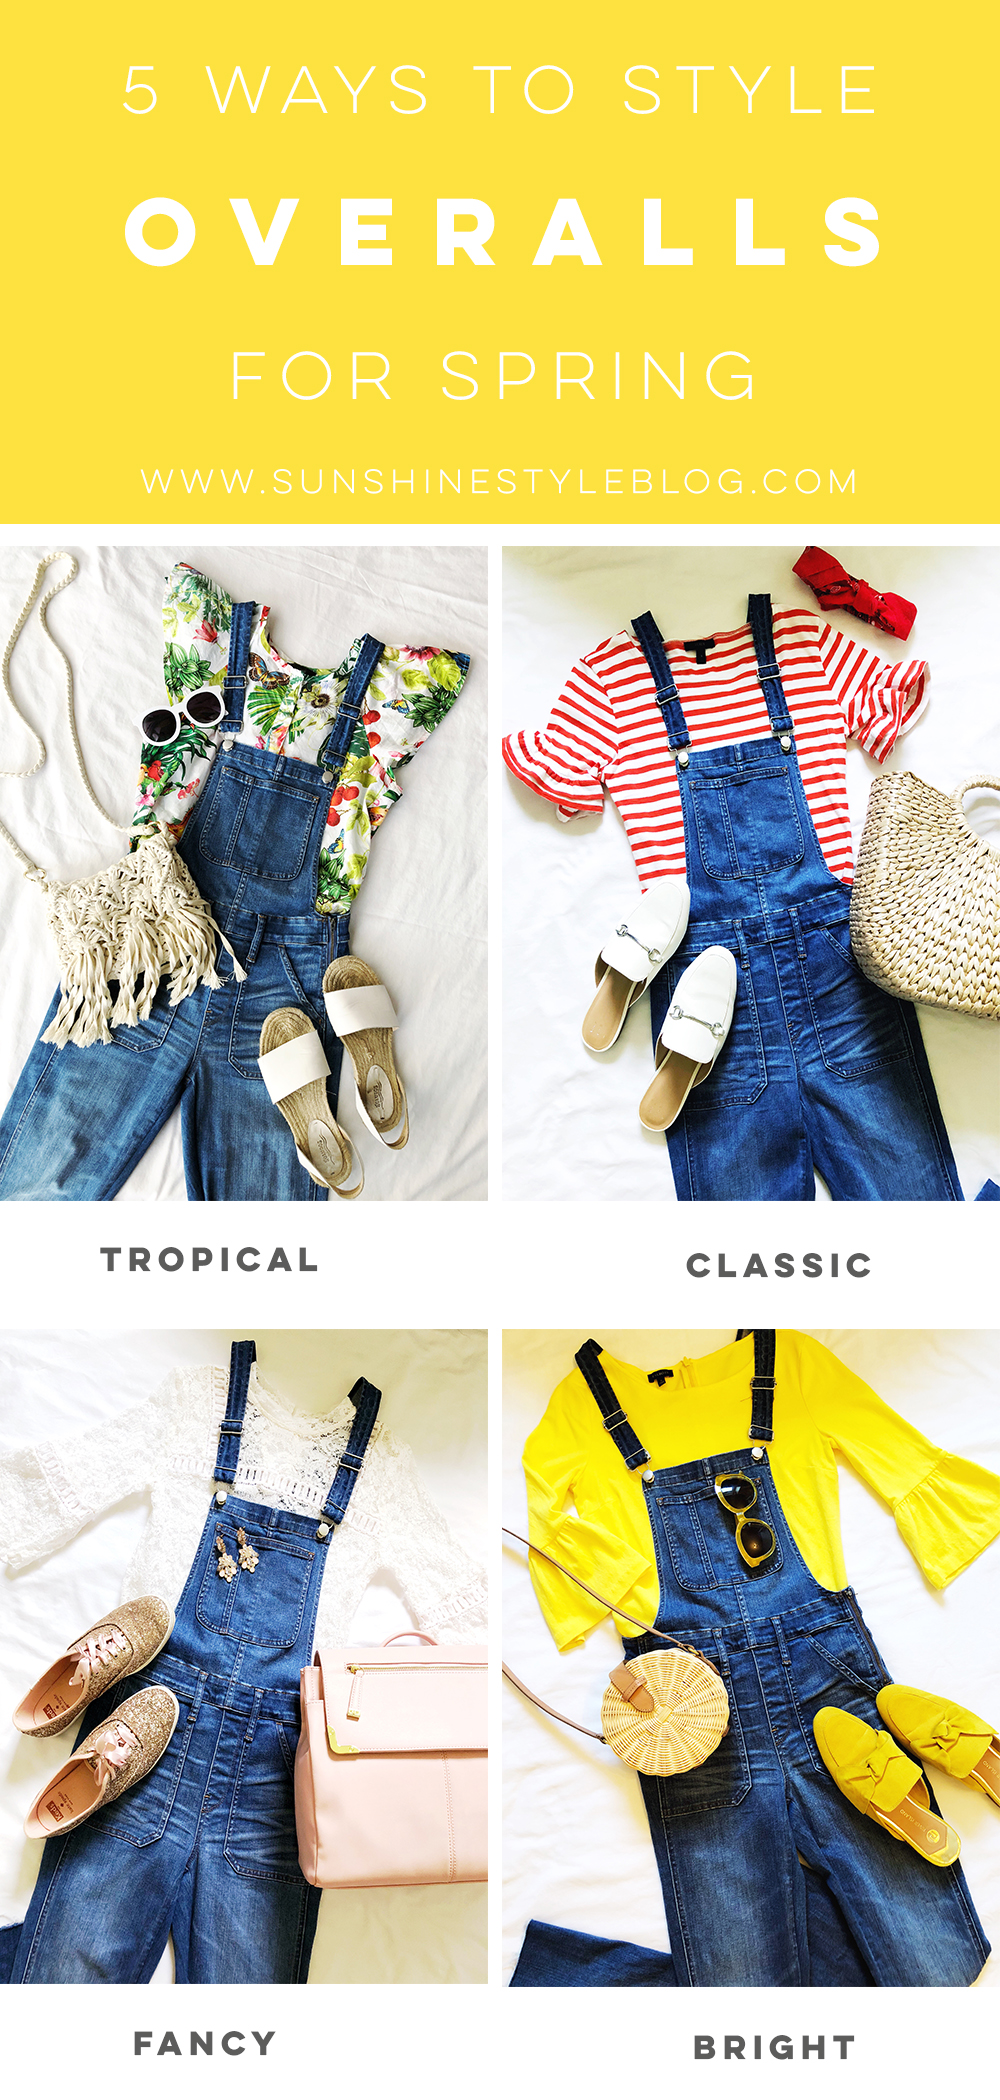 5 Ways to Style Overalls for Spring - florida fashion blogger style madewell overalls